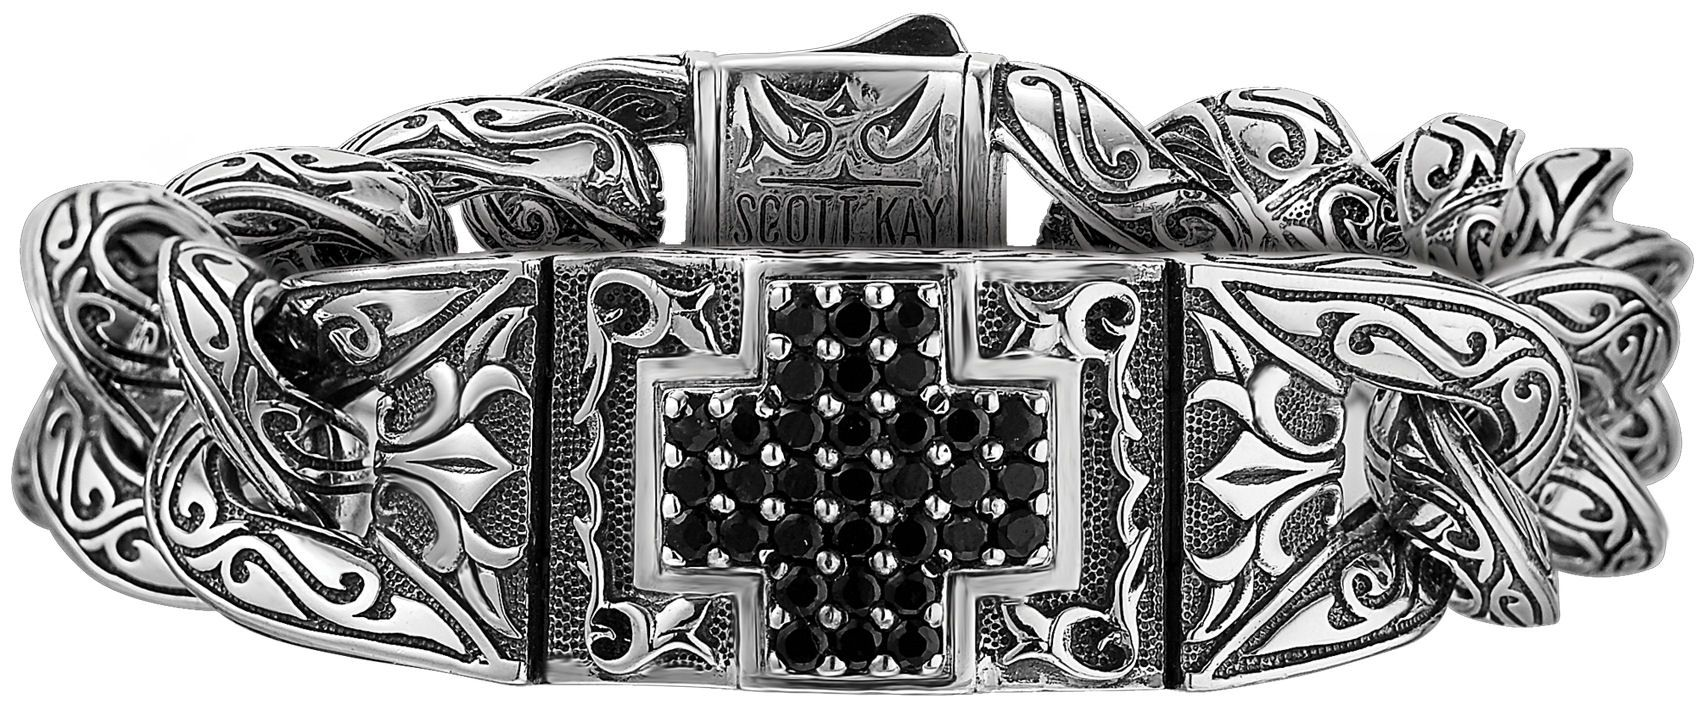 Scott Kay Unkaged Large Black Sapphire Sterling Silver Cross Bracelet